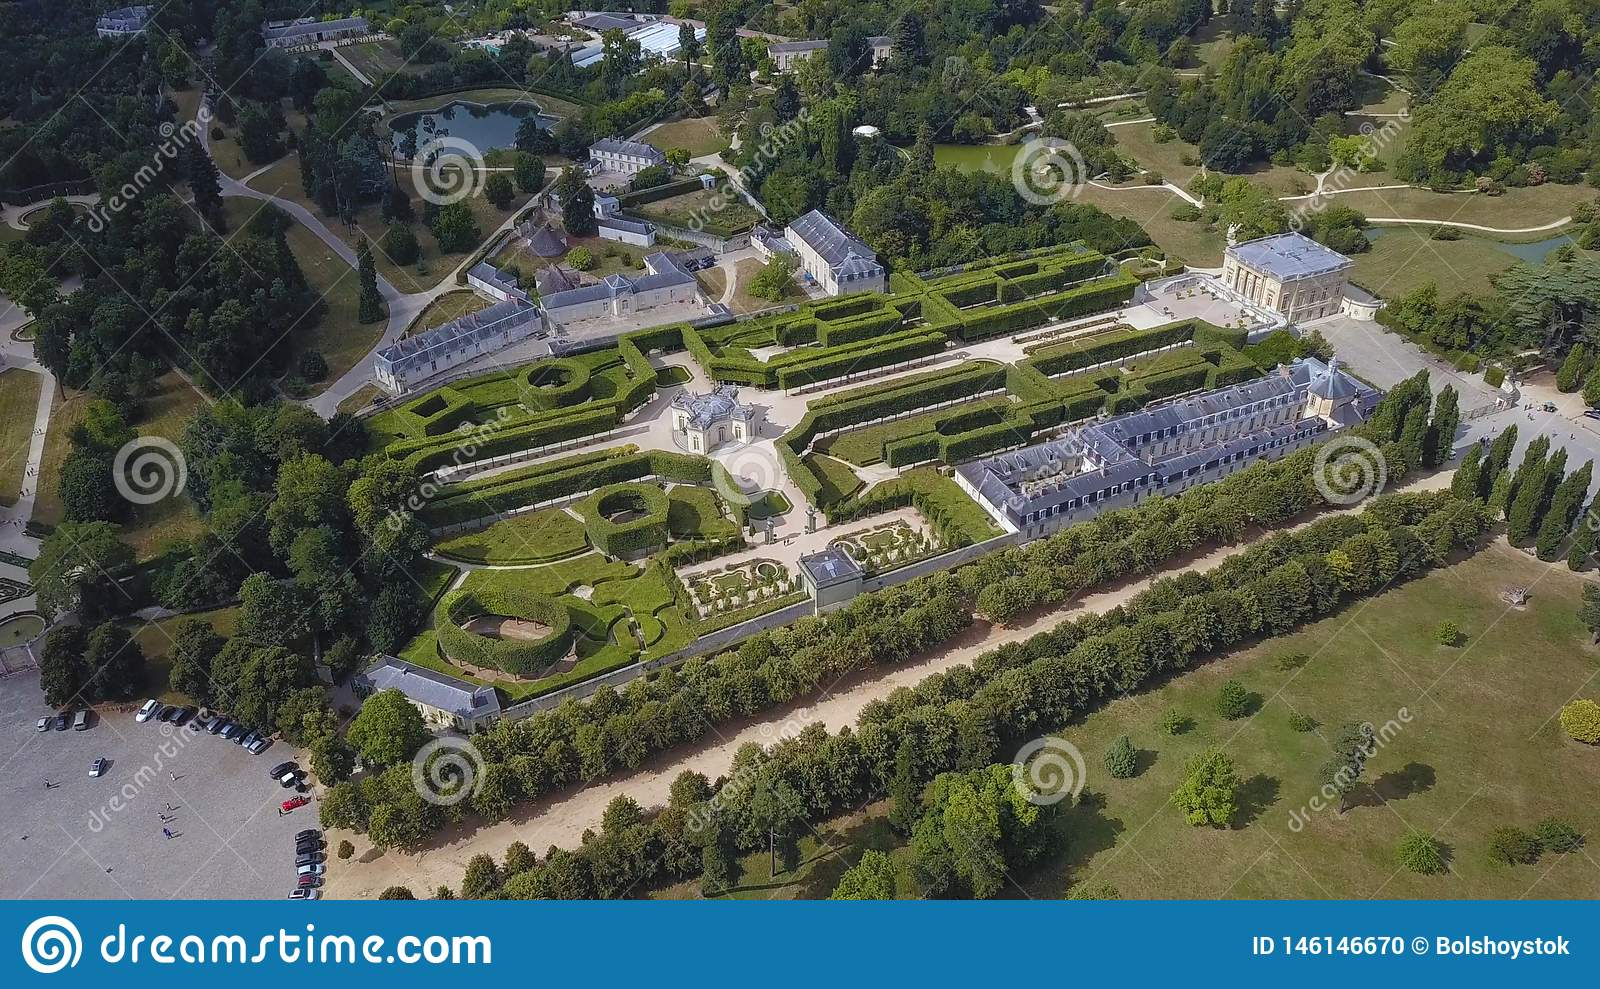 Aerial view of beautiful light palace and other buildings in architectural complex with picturesque French garden